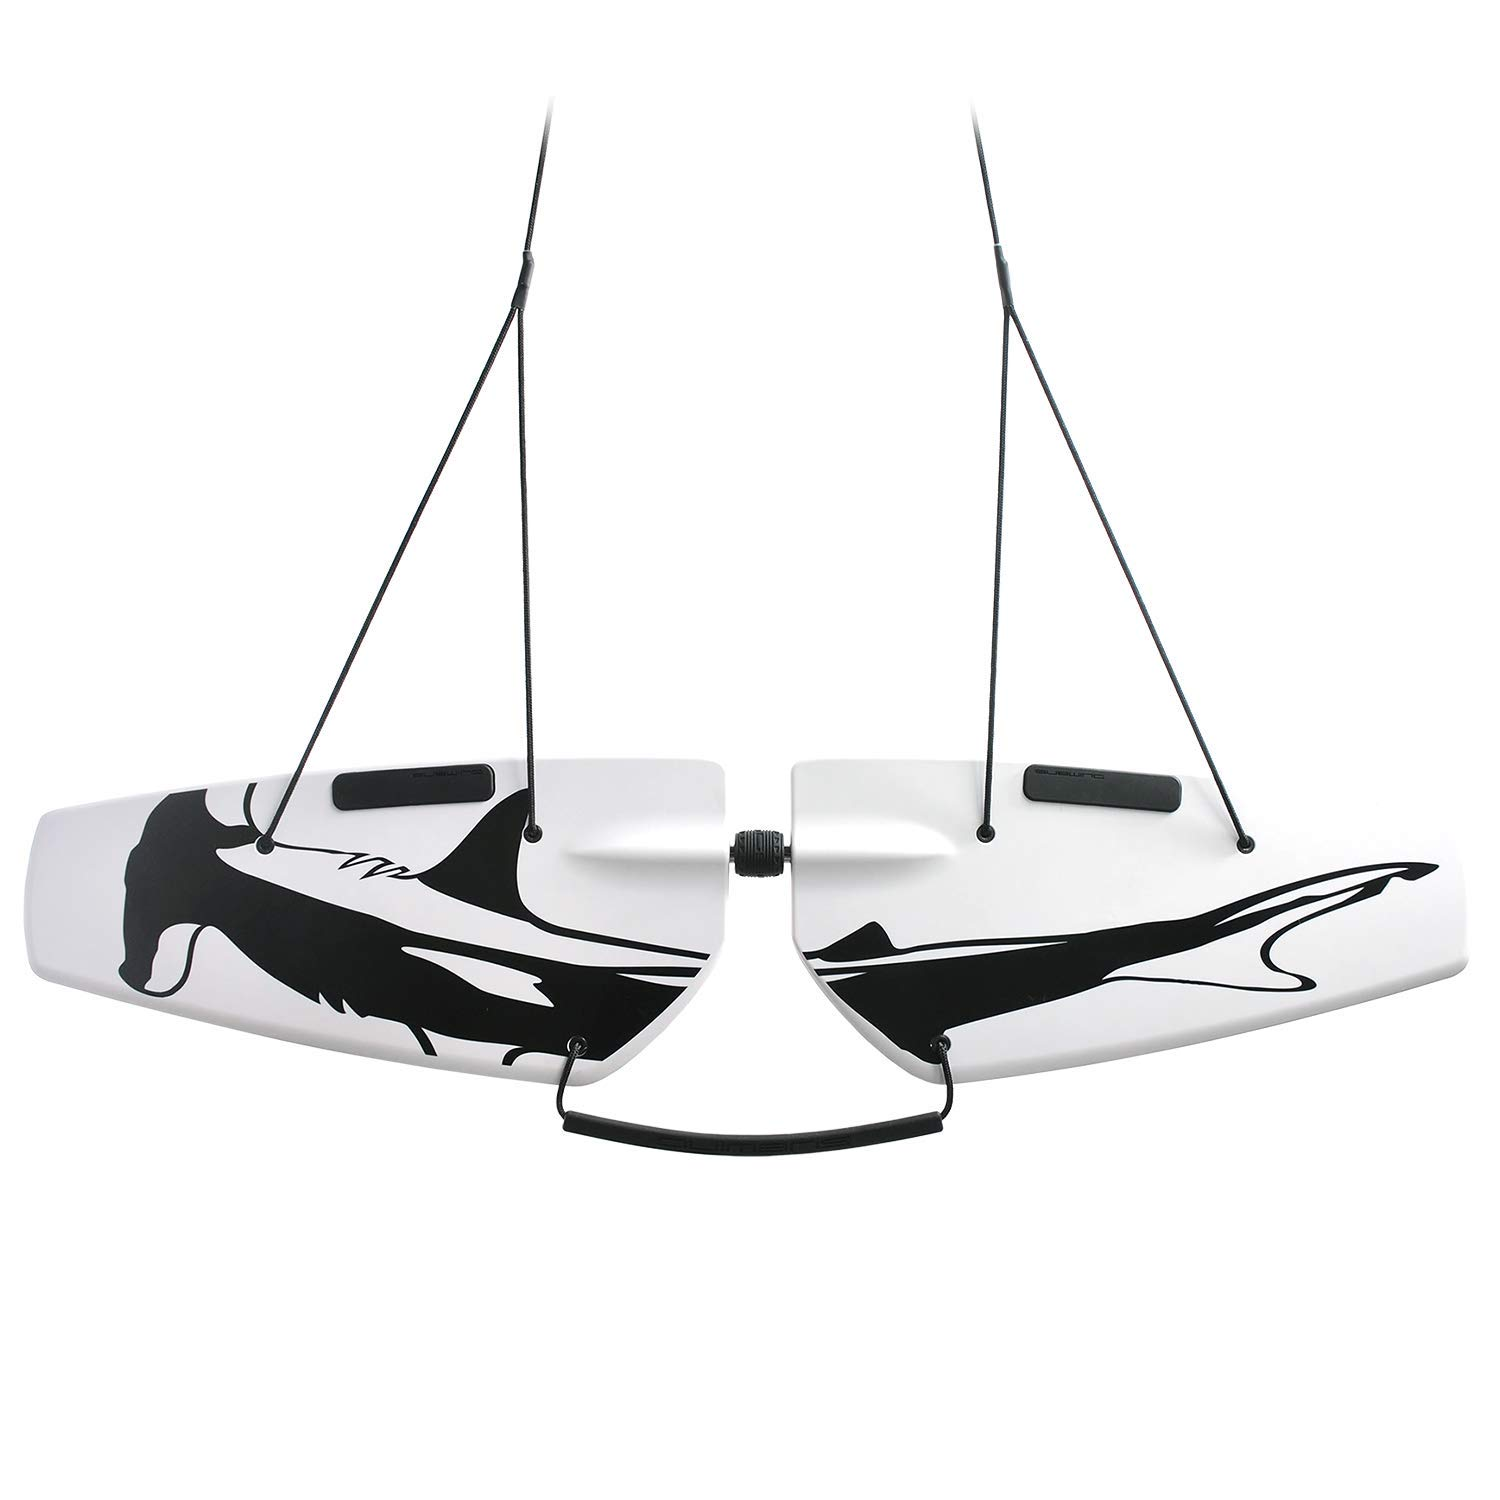 Subwing - Fly Under Water - Towable Watersports Board for Boats - 1, 2, 3, 4 Person Tow - Alternative Pull Behind to Water Skiing, Flying Tubes & Tube Floats - Best Boat Accessories by Subwing